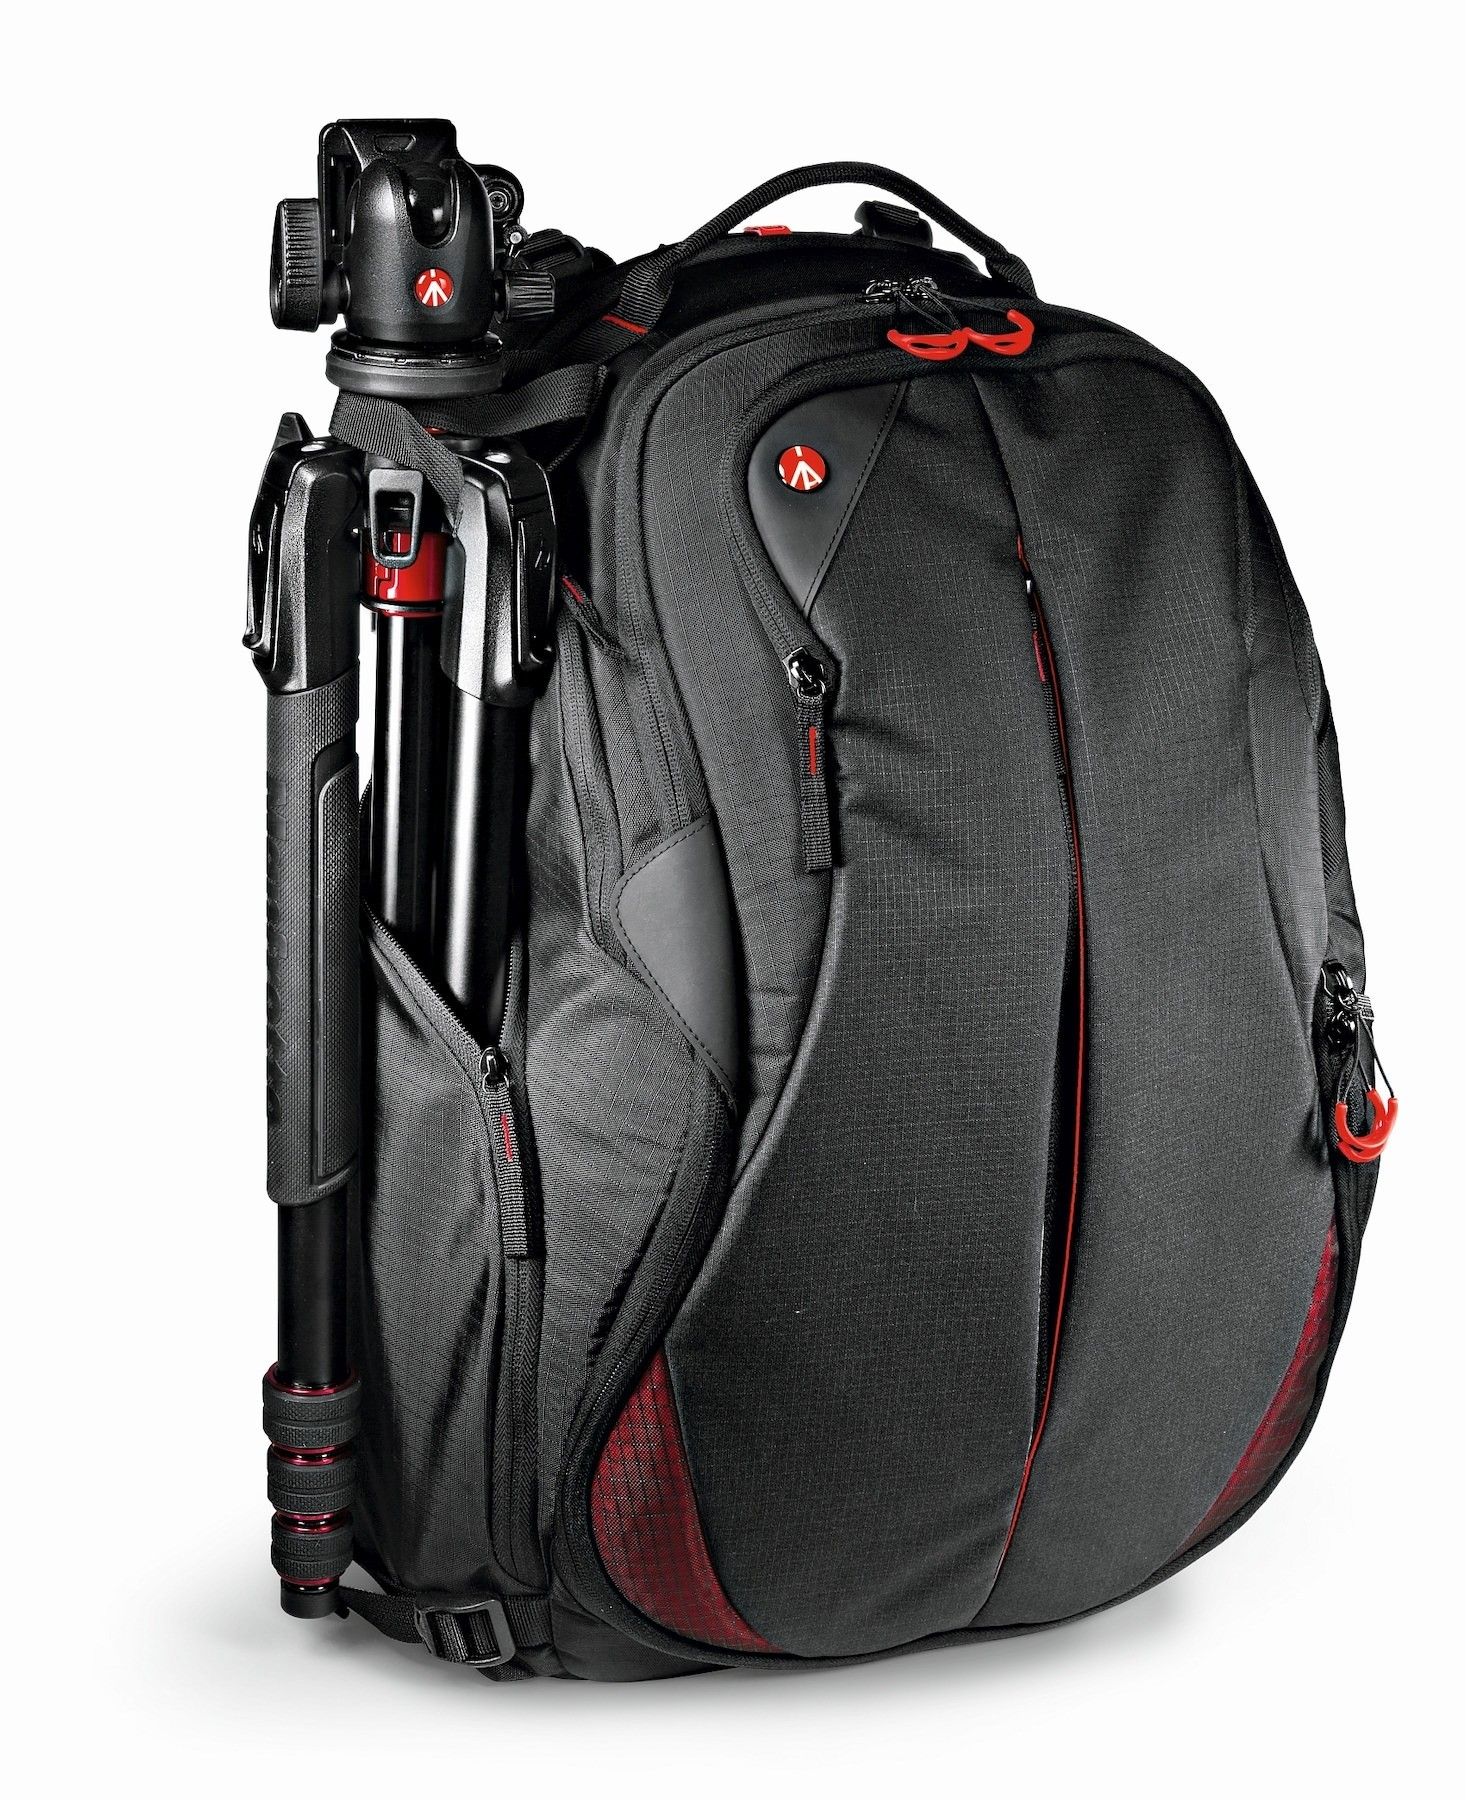 Manfrotto Pro Light PL-B-230 Bumblebee-230